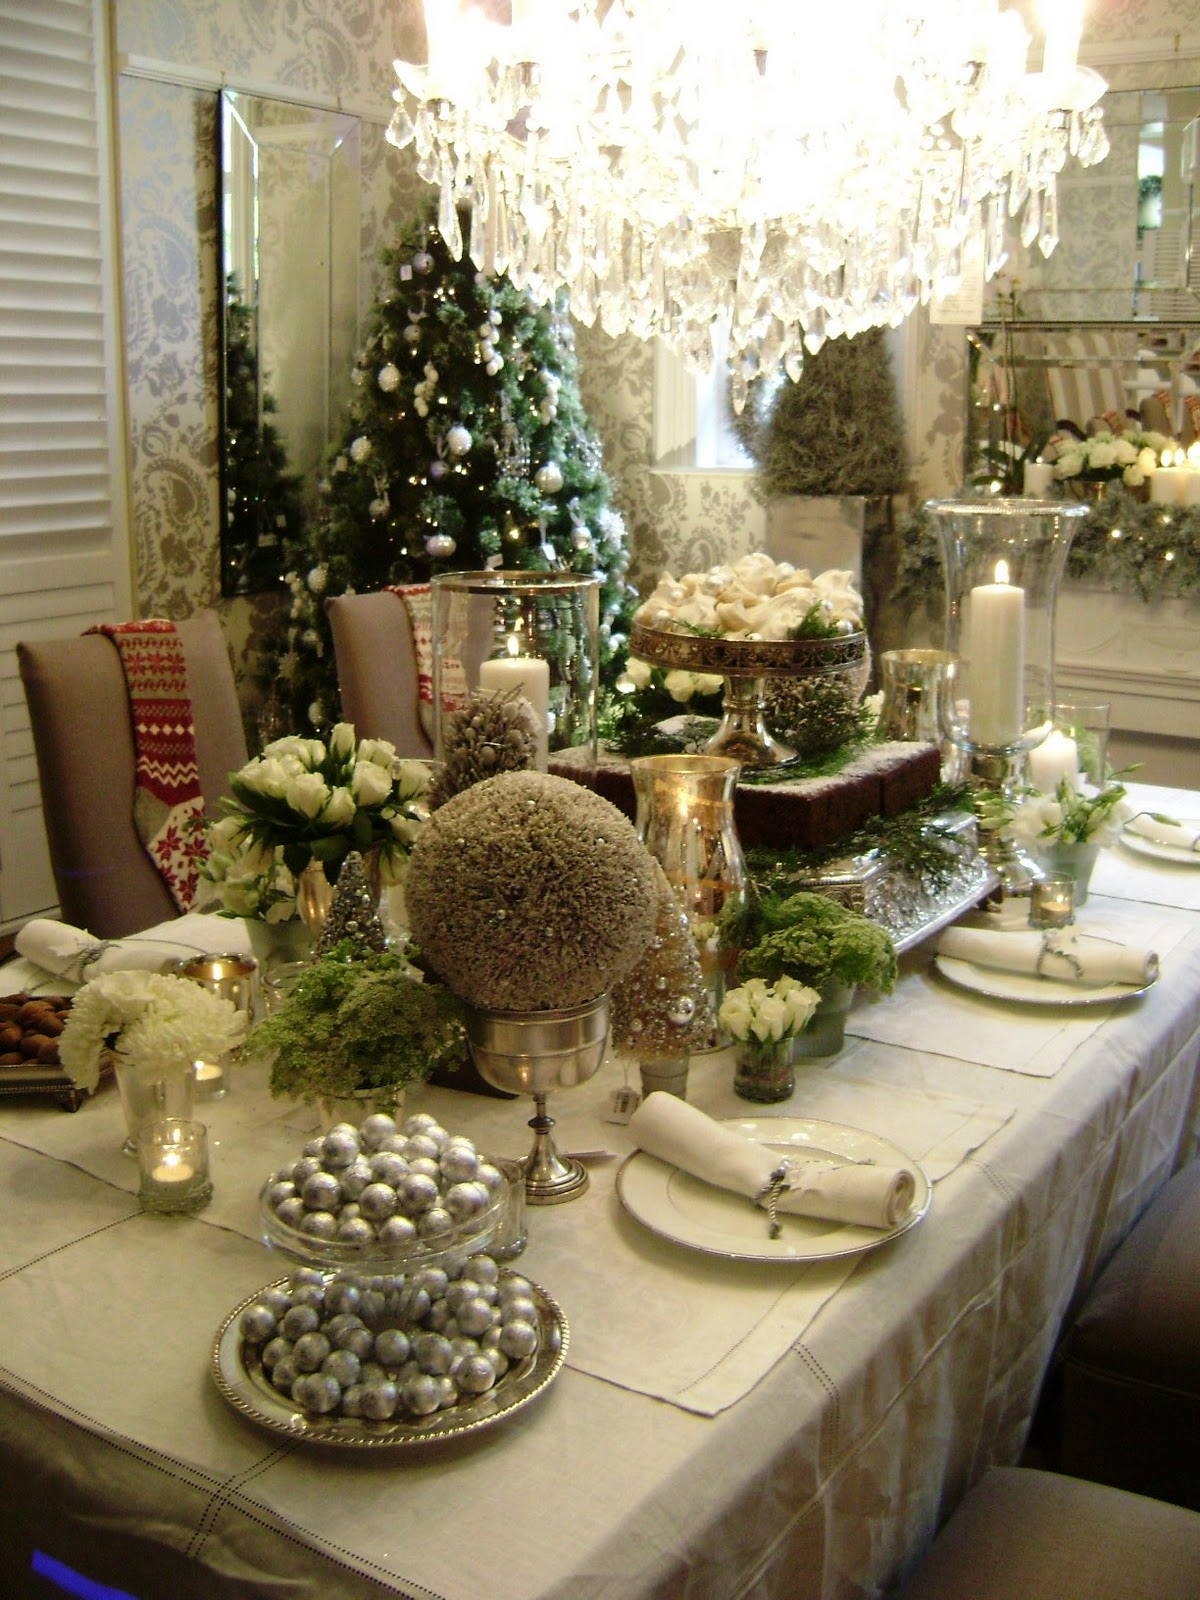 Charcoal interiors style in the city dec 17 2010 for Small table setting ideas